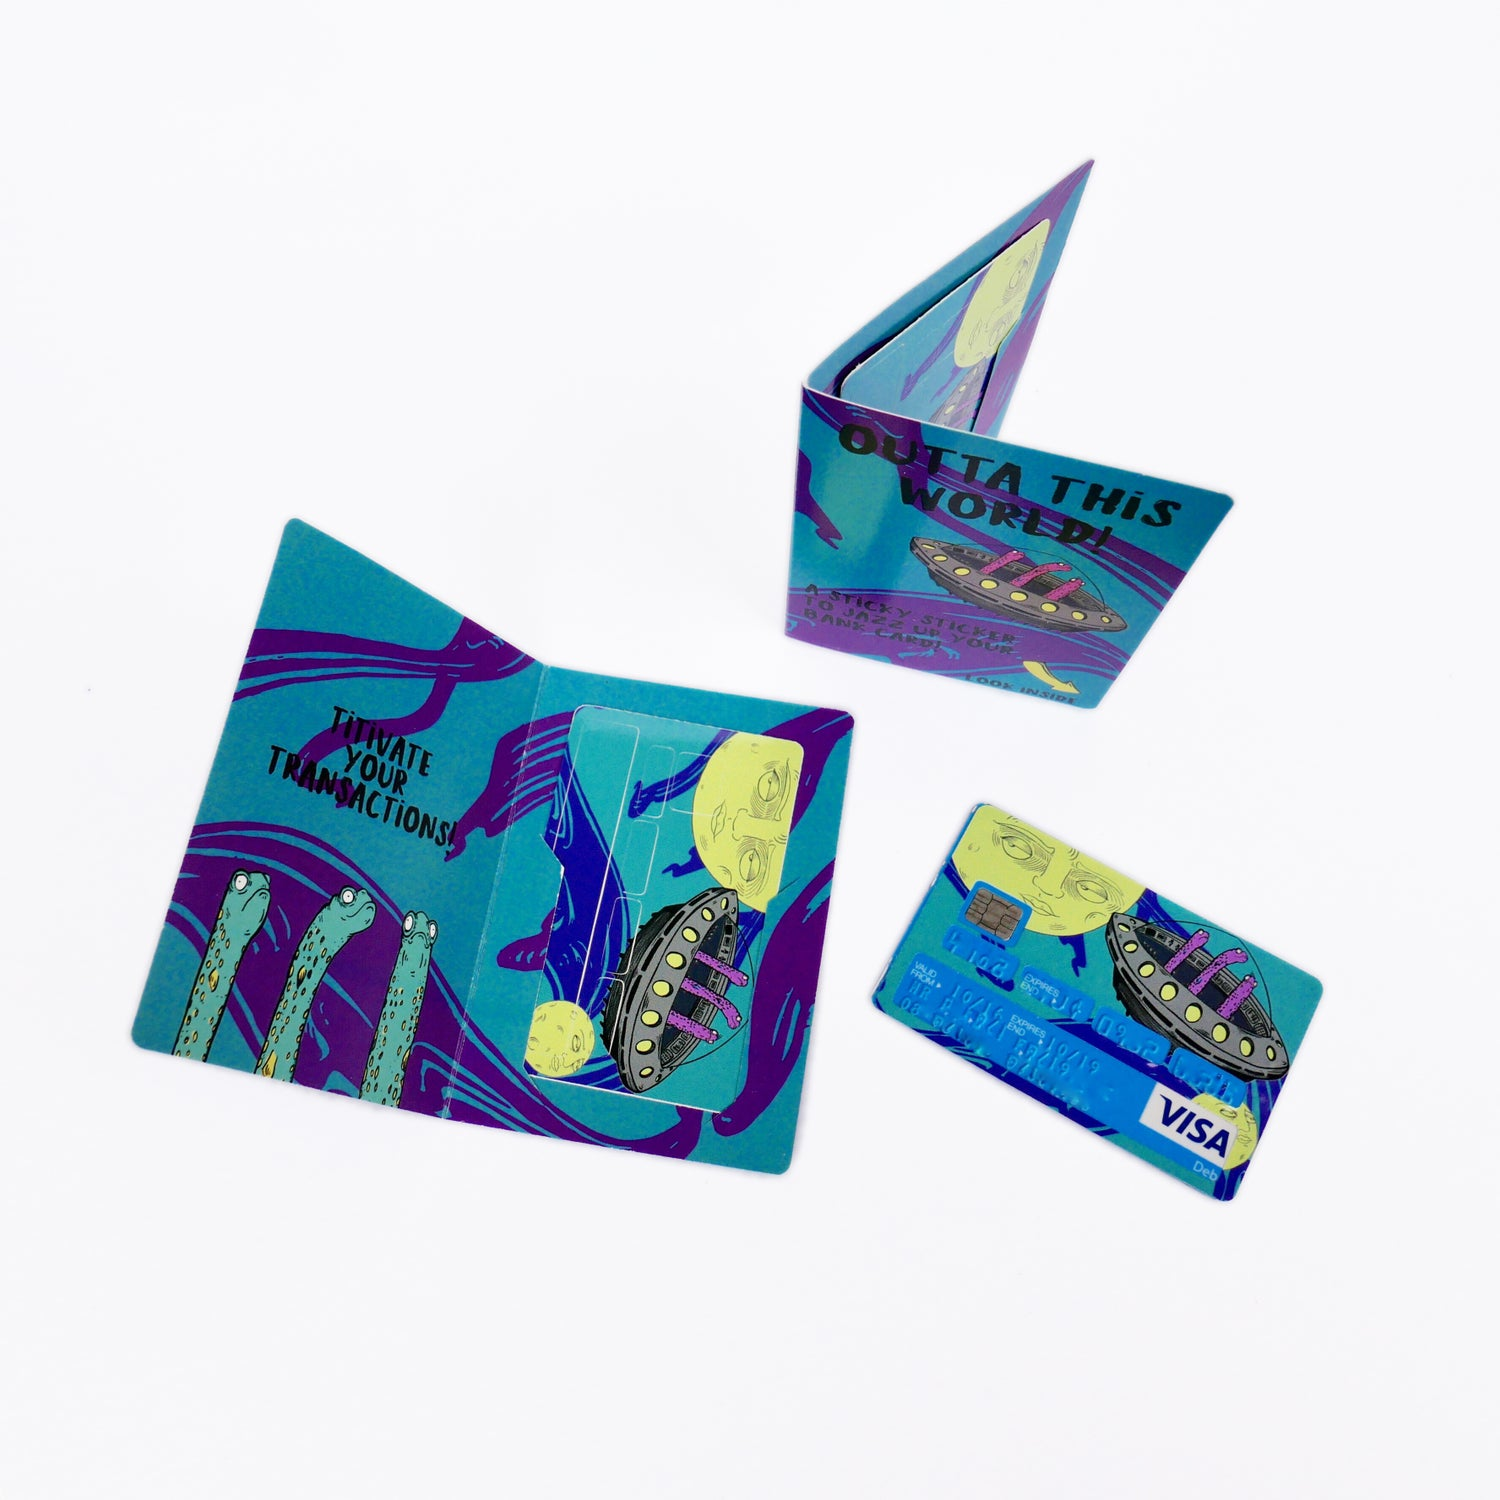 Image of Bank Card Stickers